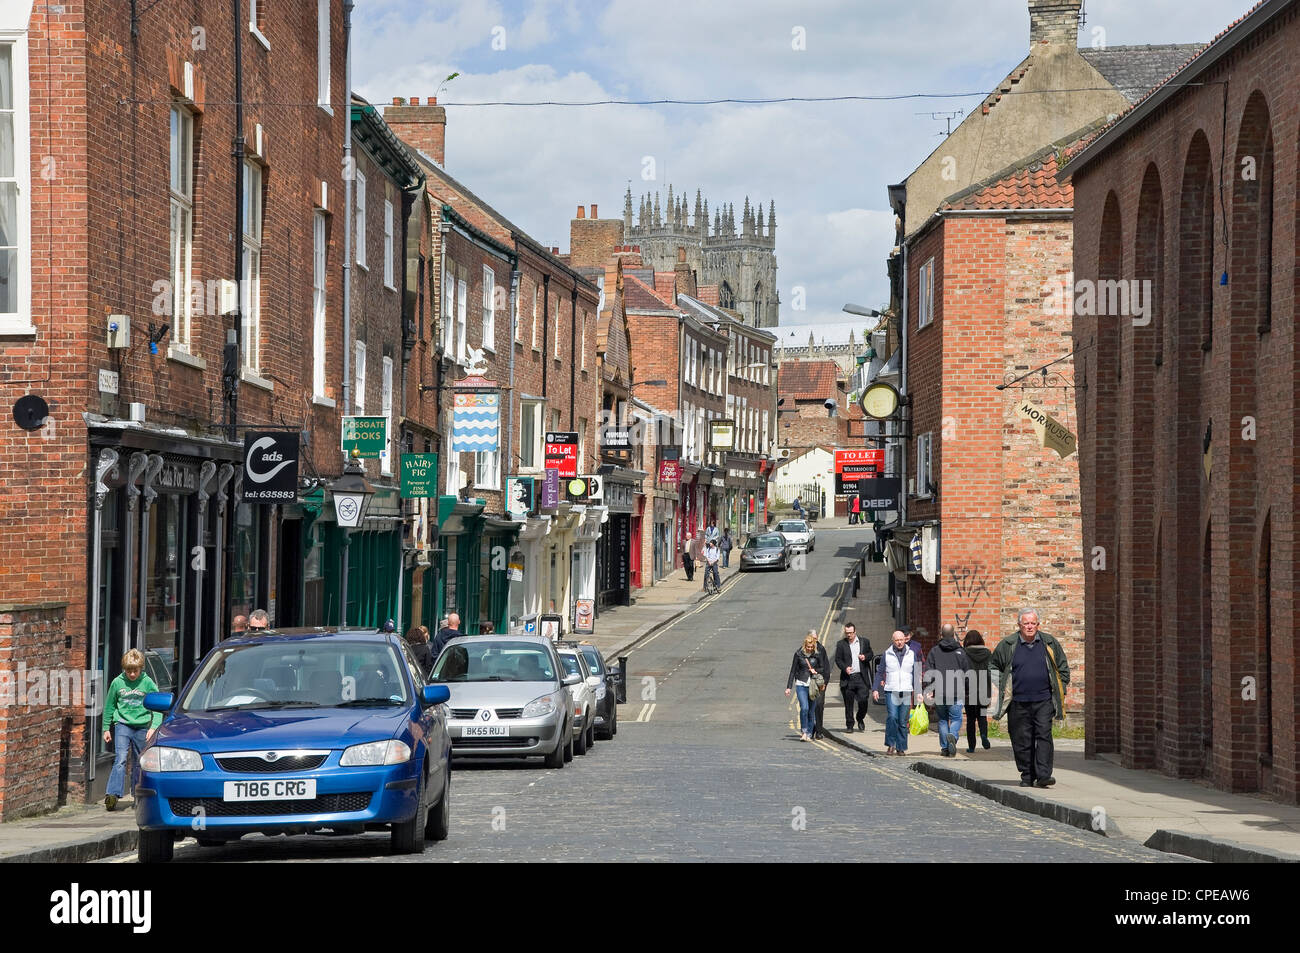 Fossgate York North Yorkshire England UK United Kingdom GB Great Britain - Stock Image